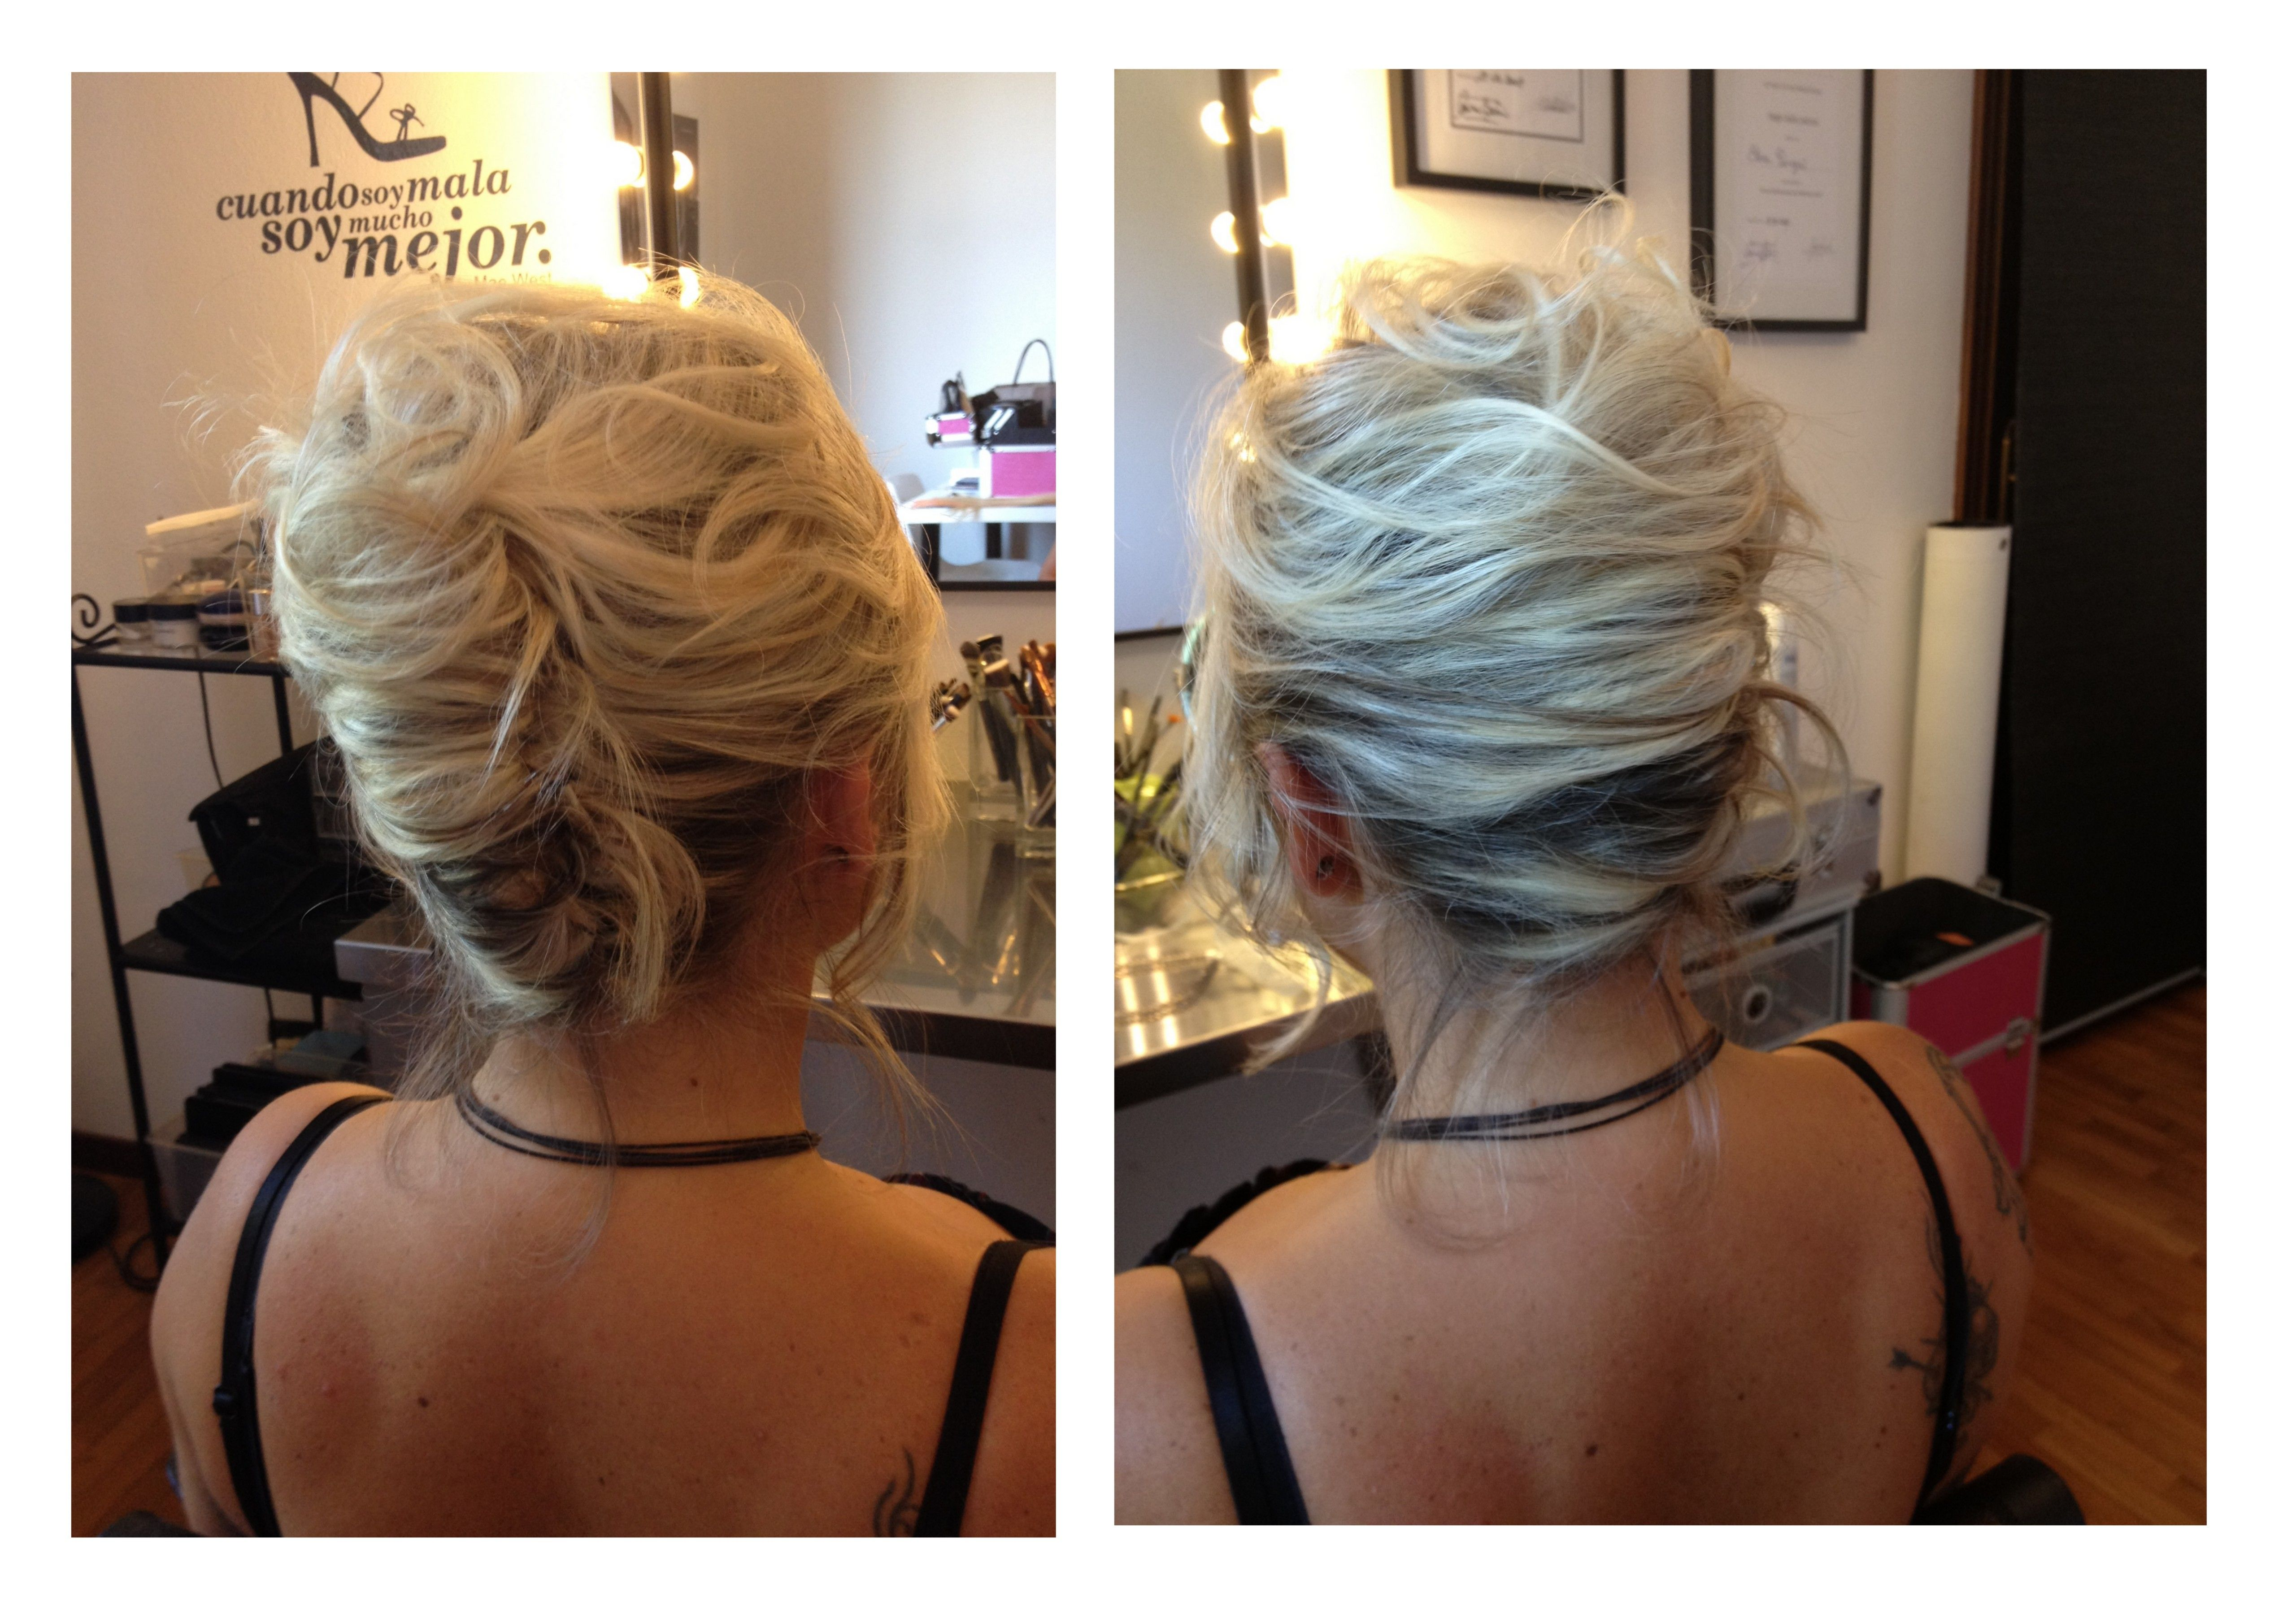 Bridal hairstyles messy french twist hair nails and beauty wallpaper hd diy wedding for medium of desktop